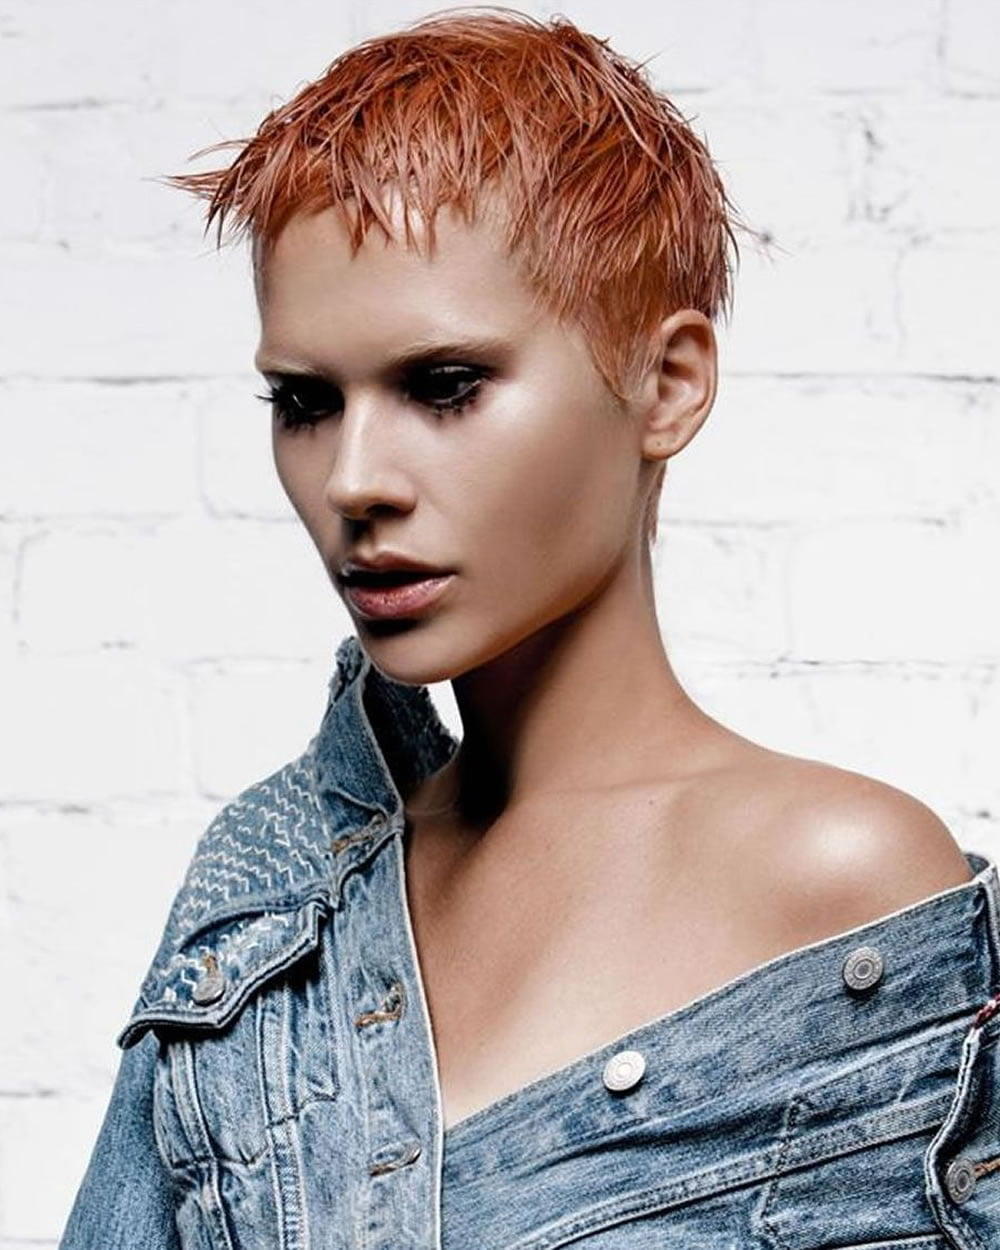 messy short pixie hair image for 20182019  hairstyles